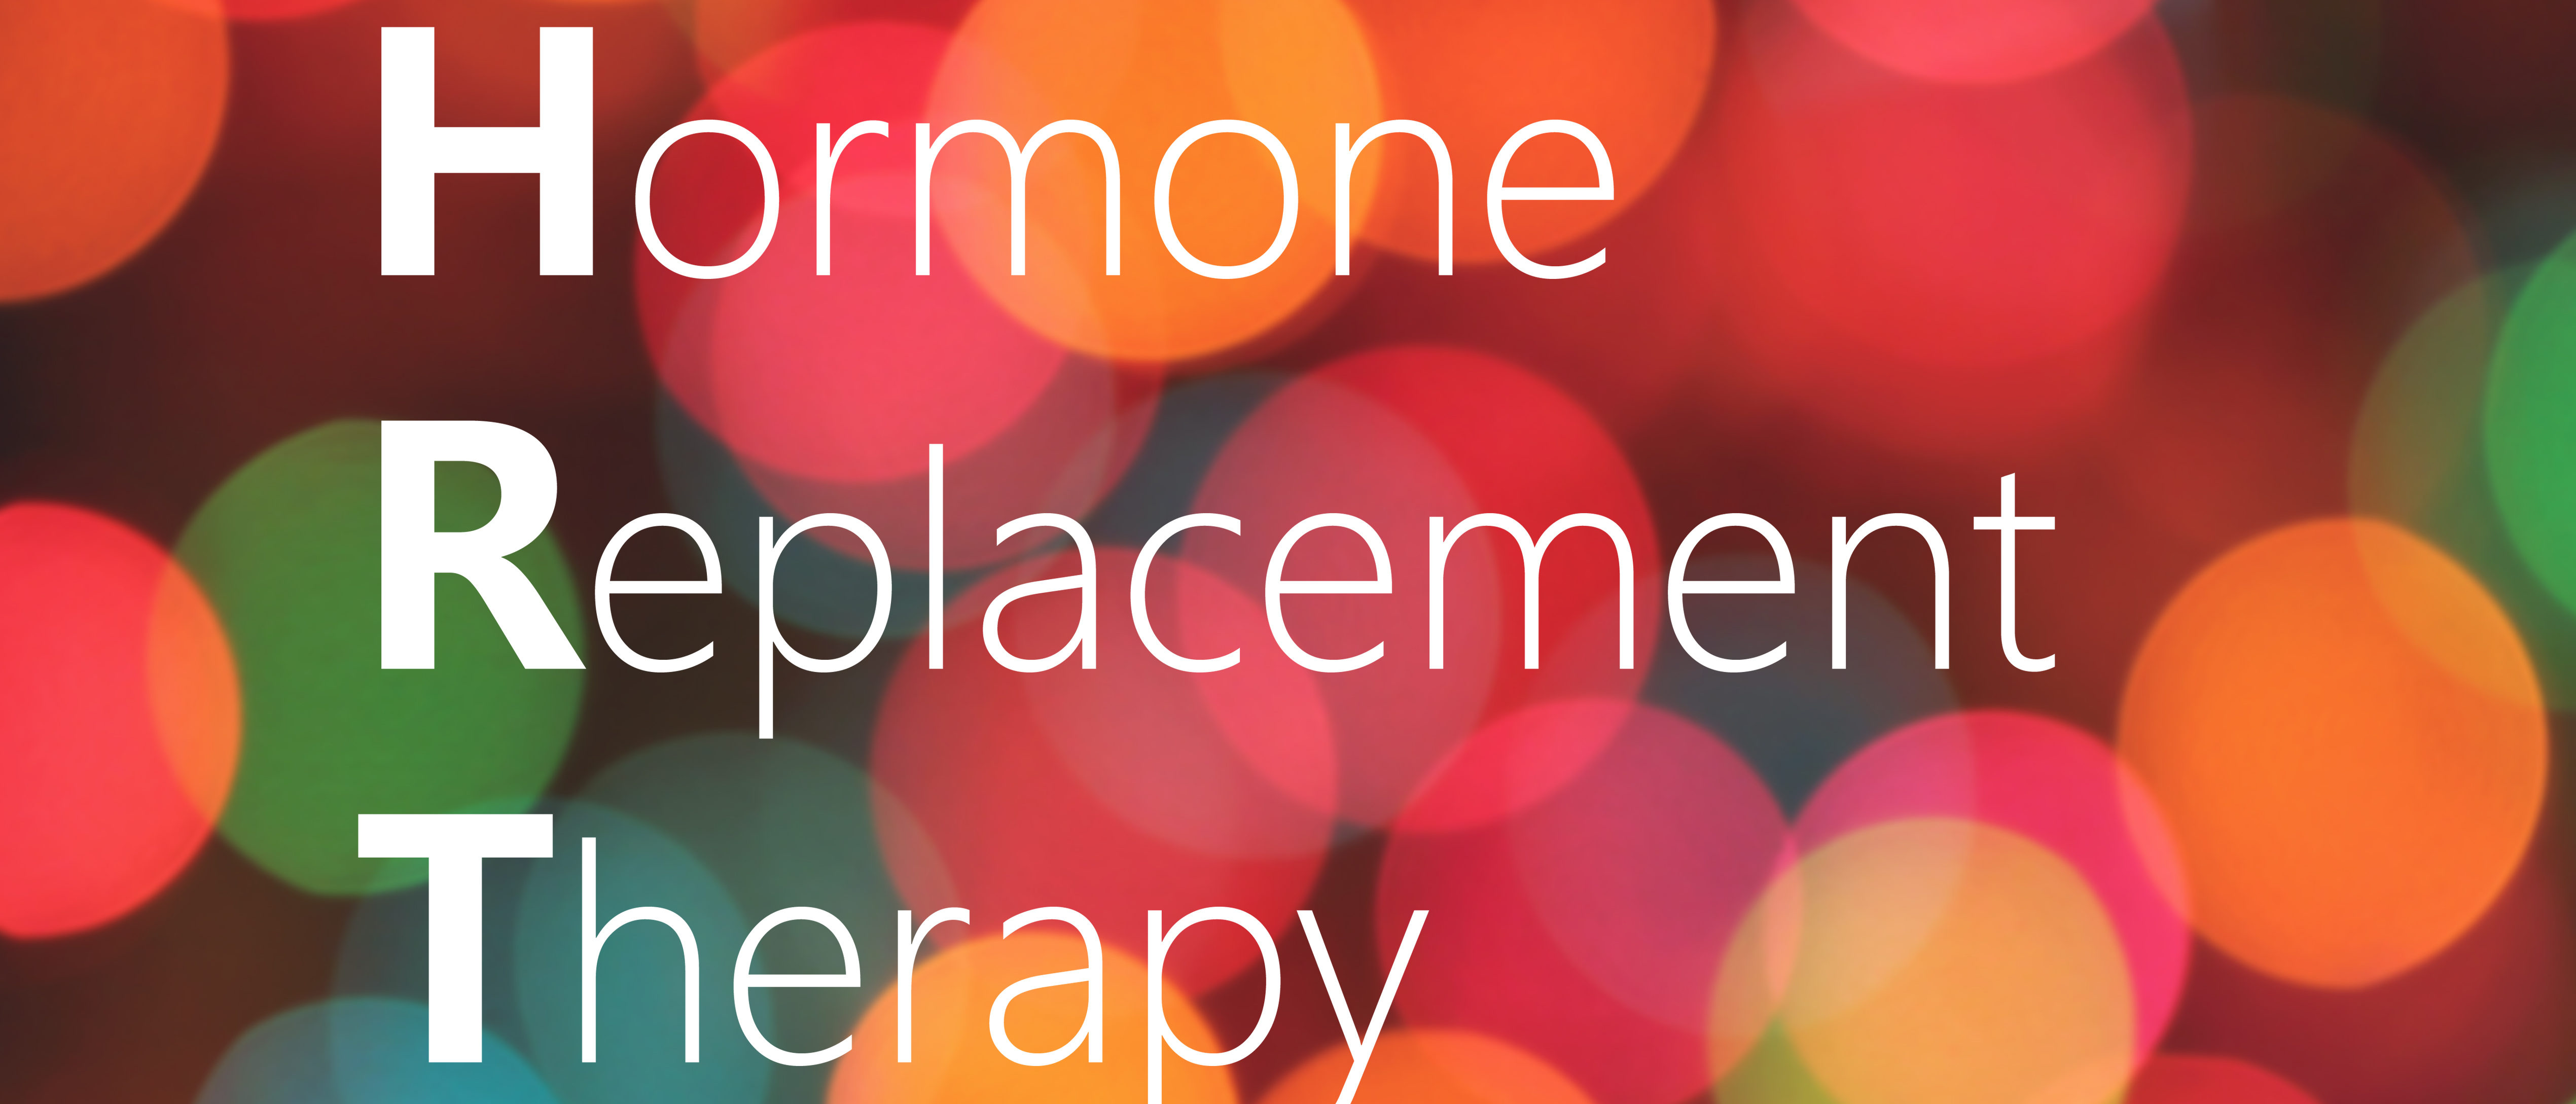 Hormone Replacement Therapy (Shutterstock/chrupka)